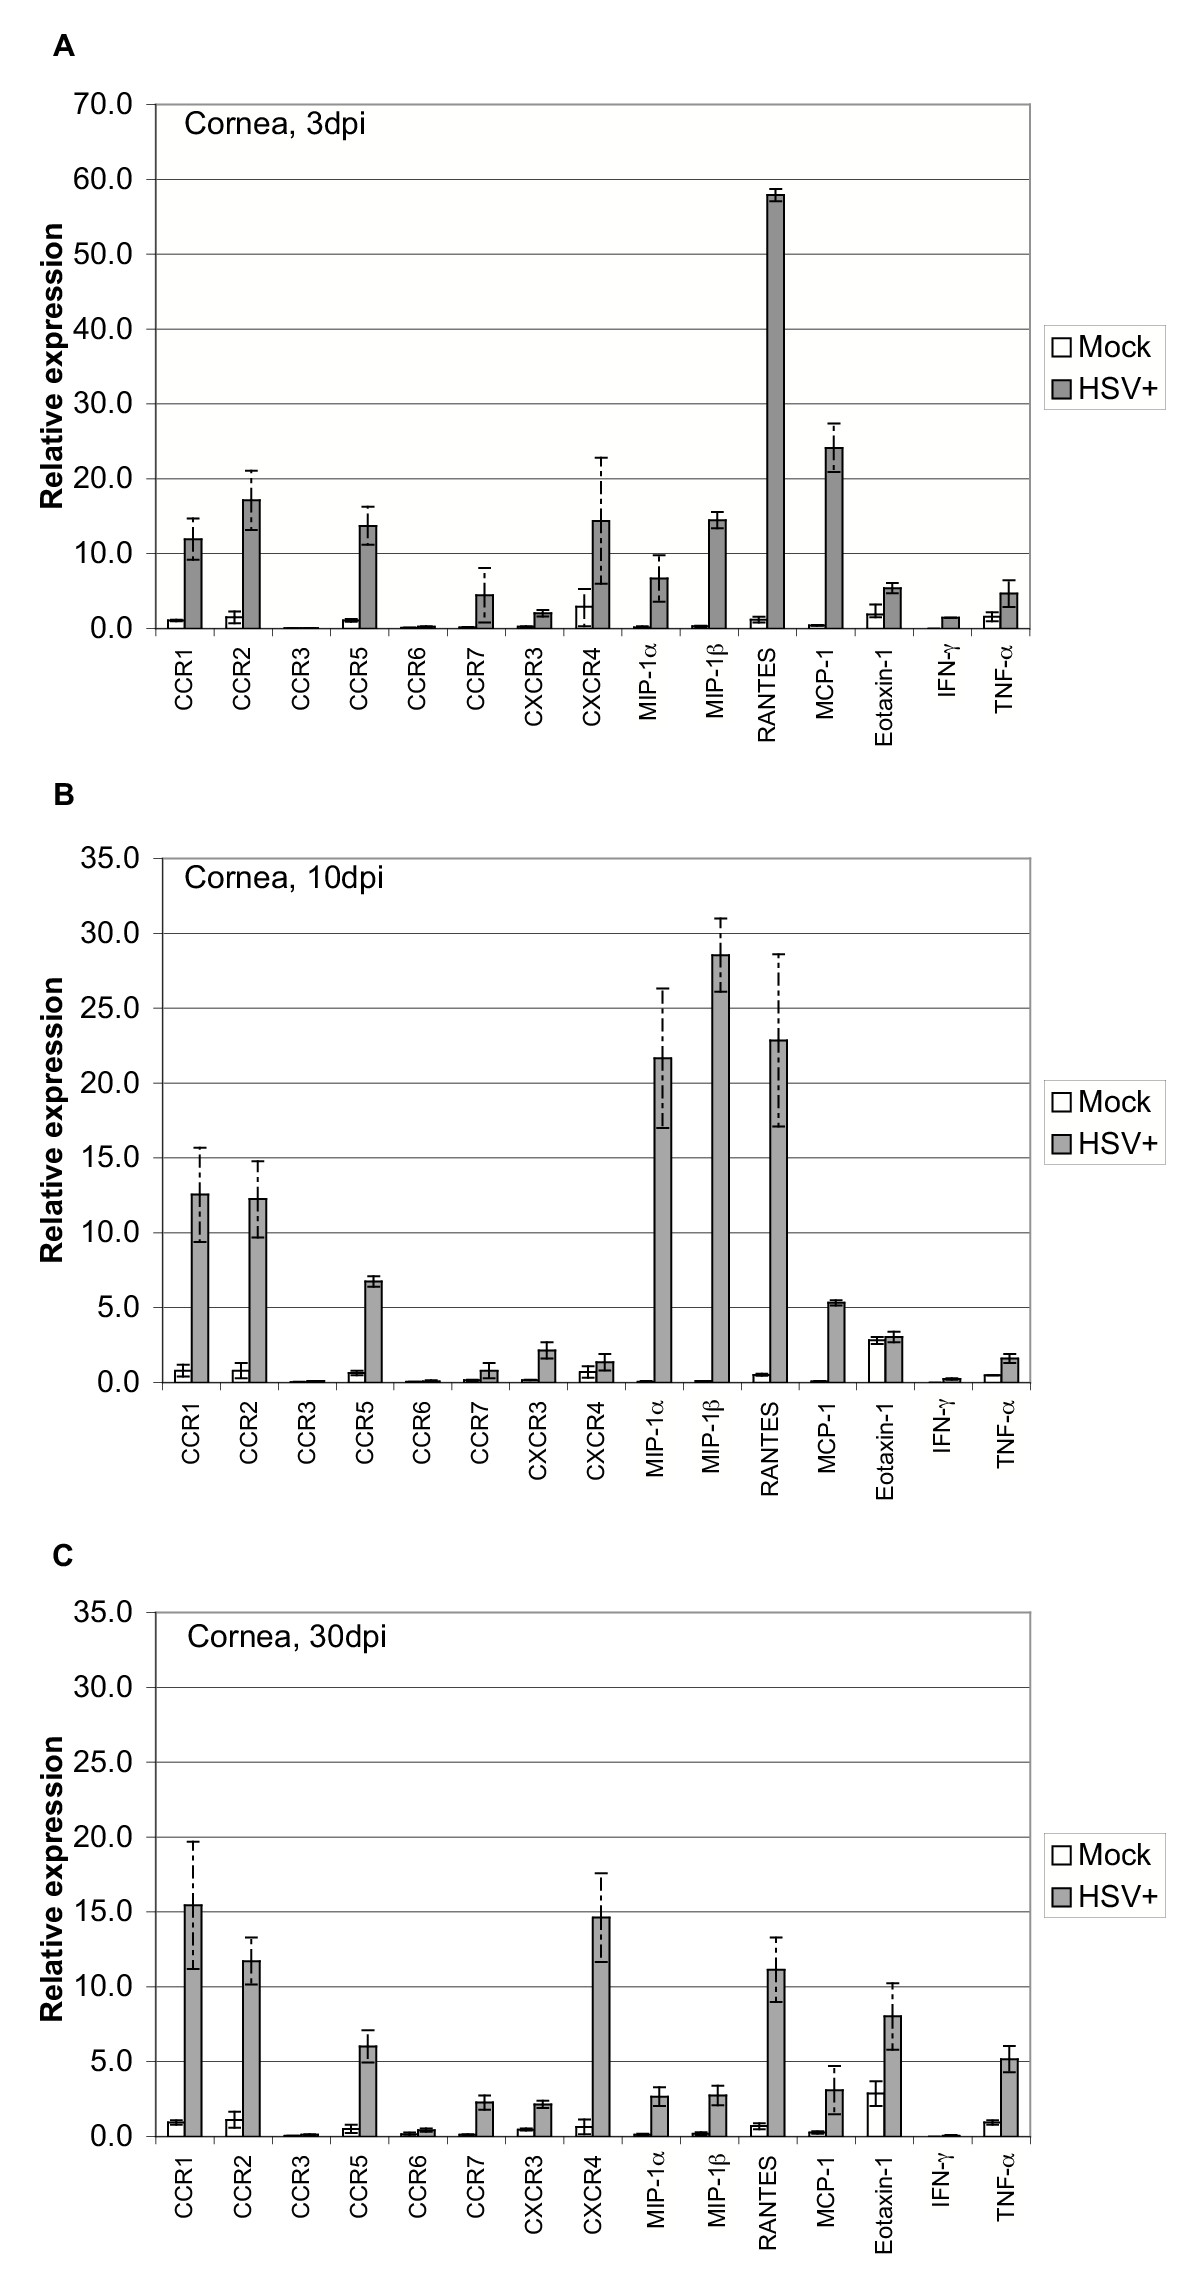 https://static-content.springer.com/image/art%3A10.1186%2F1743-422X-1-5/MediaObjects/12985_2004_Article_5_Fig2_HTML.jpg